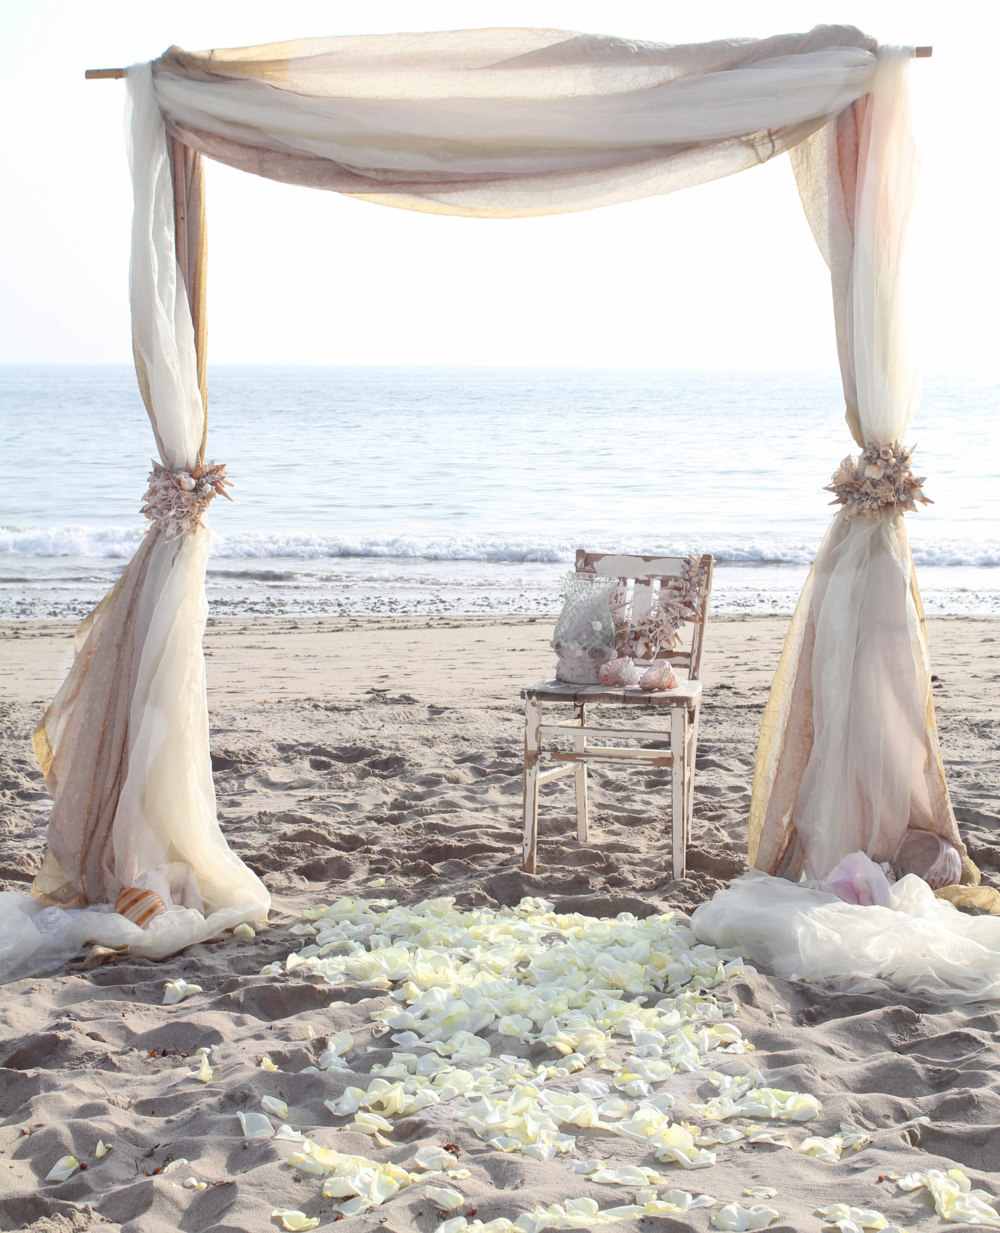 Wedding Seashells is about embracing beach and shore